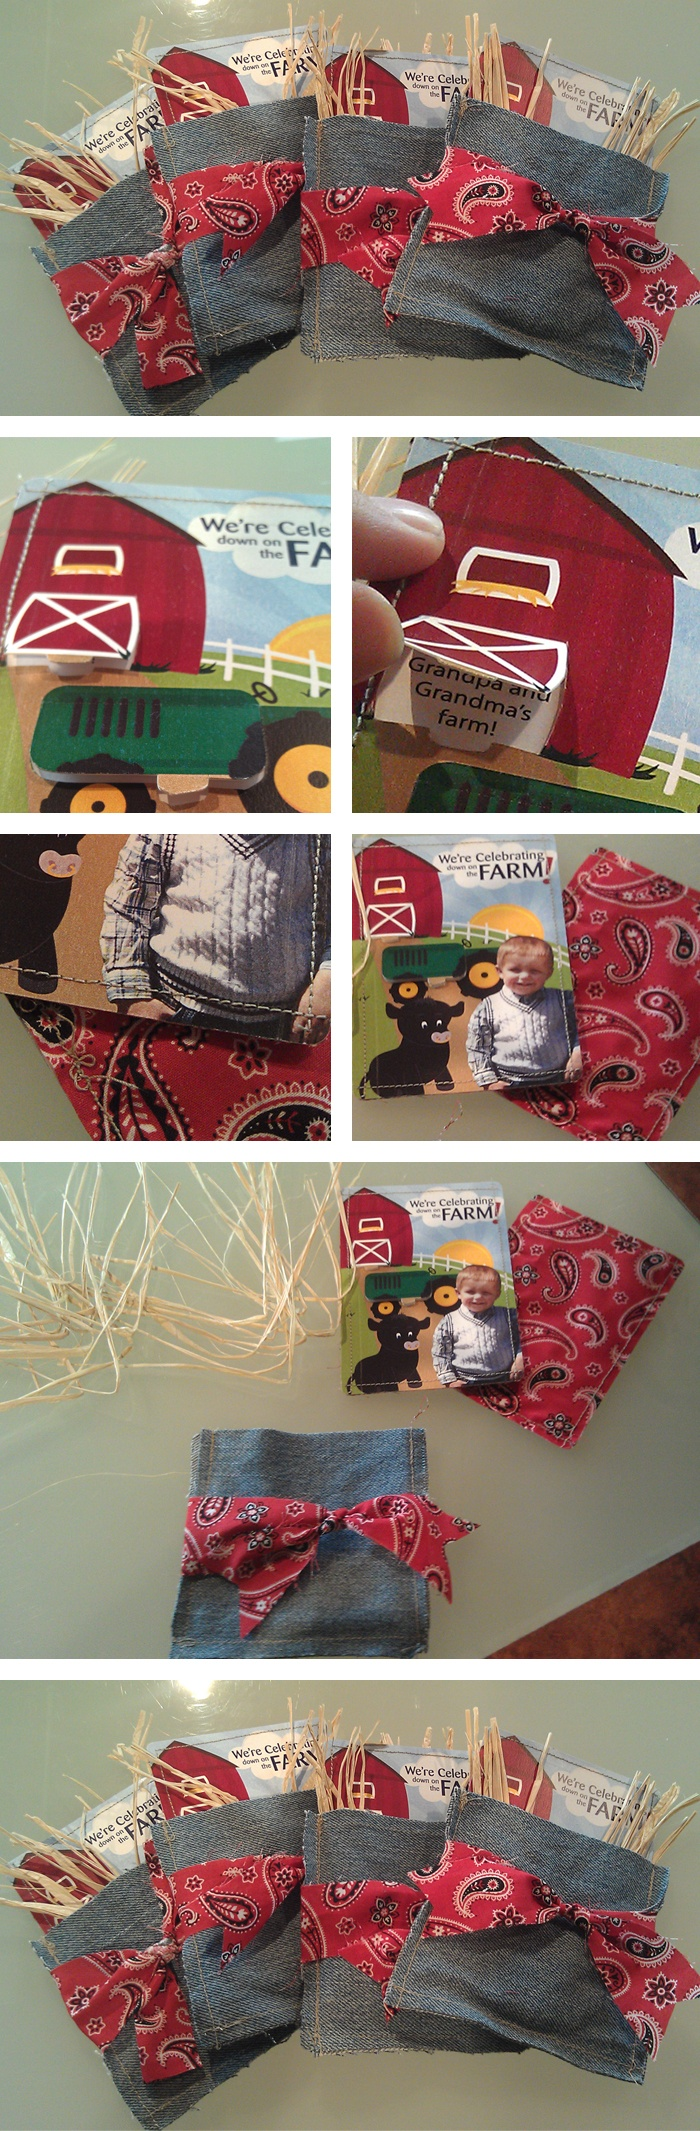 Birthday party invitation for my son's 2nd birthday - farm theme. He loves the farm!  1) Design (or buy) your invite. I cut pop up tabs, like you see in toddler books.  2) Cover the back by sewing bandana material to the back of the paper.  3) Cut rectangles from old jeans, sew on three sides to make a pouch.  4) Assemble: add some raffia and put the invite in the jean pouch. Tie a strip of bandana material around to finish.  Alt: tie strip of leather around pouch, adding a small belt buckle